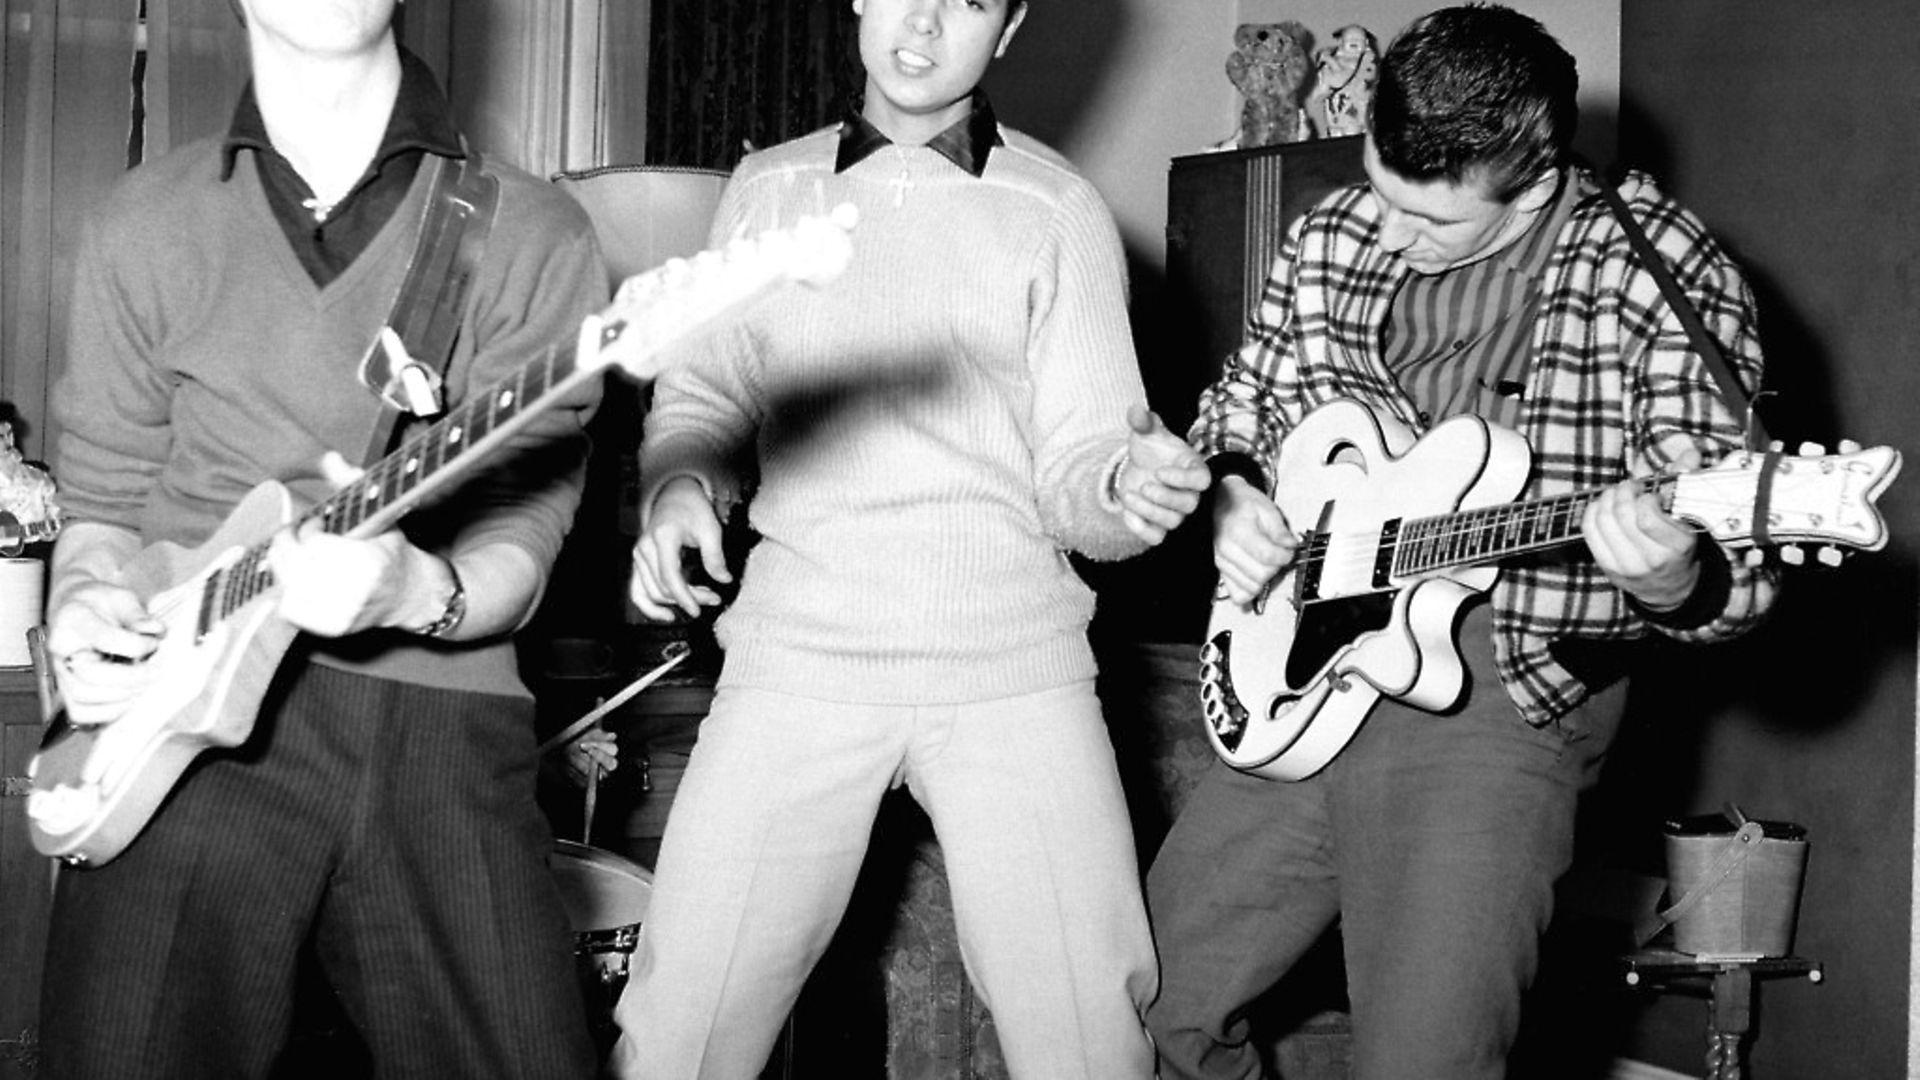 UNITED KINGDOM - JANUARY 01:  Photo of Cliff RICHARD and SHADOWS; posed with The Shadows (when they were called The Drifters) - L-R: Hank Marvin, Cliff Richard, Bruce Welch - c.1959  (Photo by Beverly Lebarrow/Redferns) - Credit: Redferns